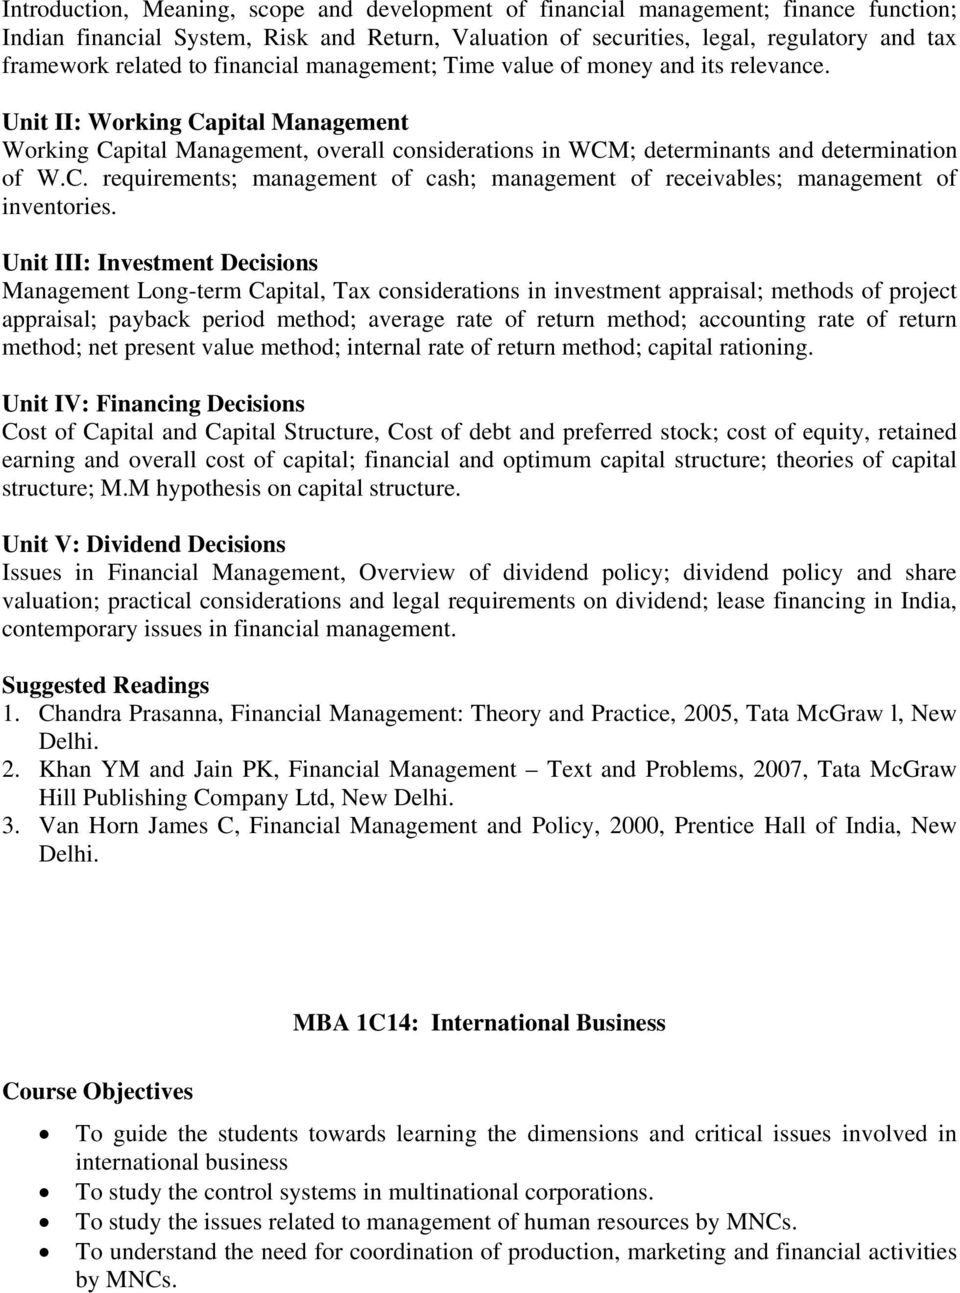 Unit III: Investment Decisions Management Long-term Capital, Tax considerations in investment appraisal; methods of project appraisal; payback period method; average rate of return method; accounting